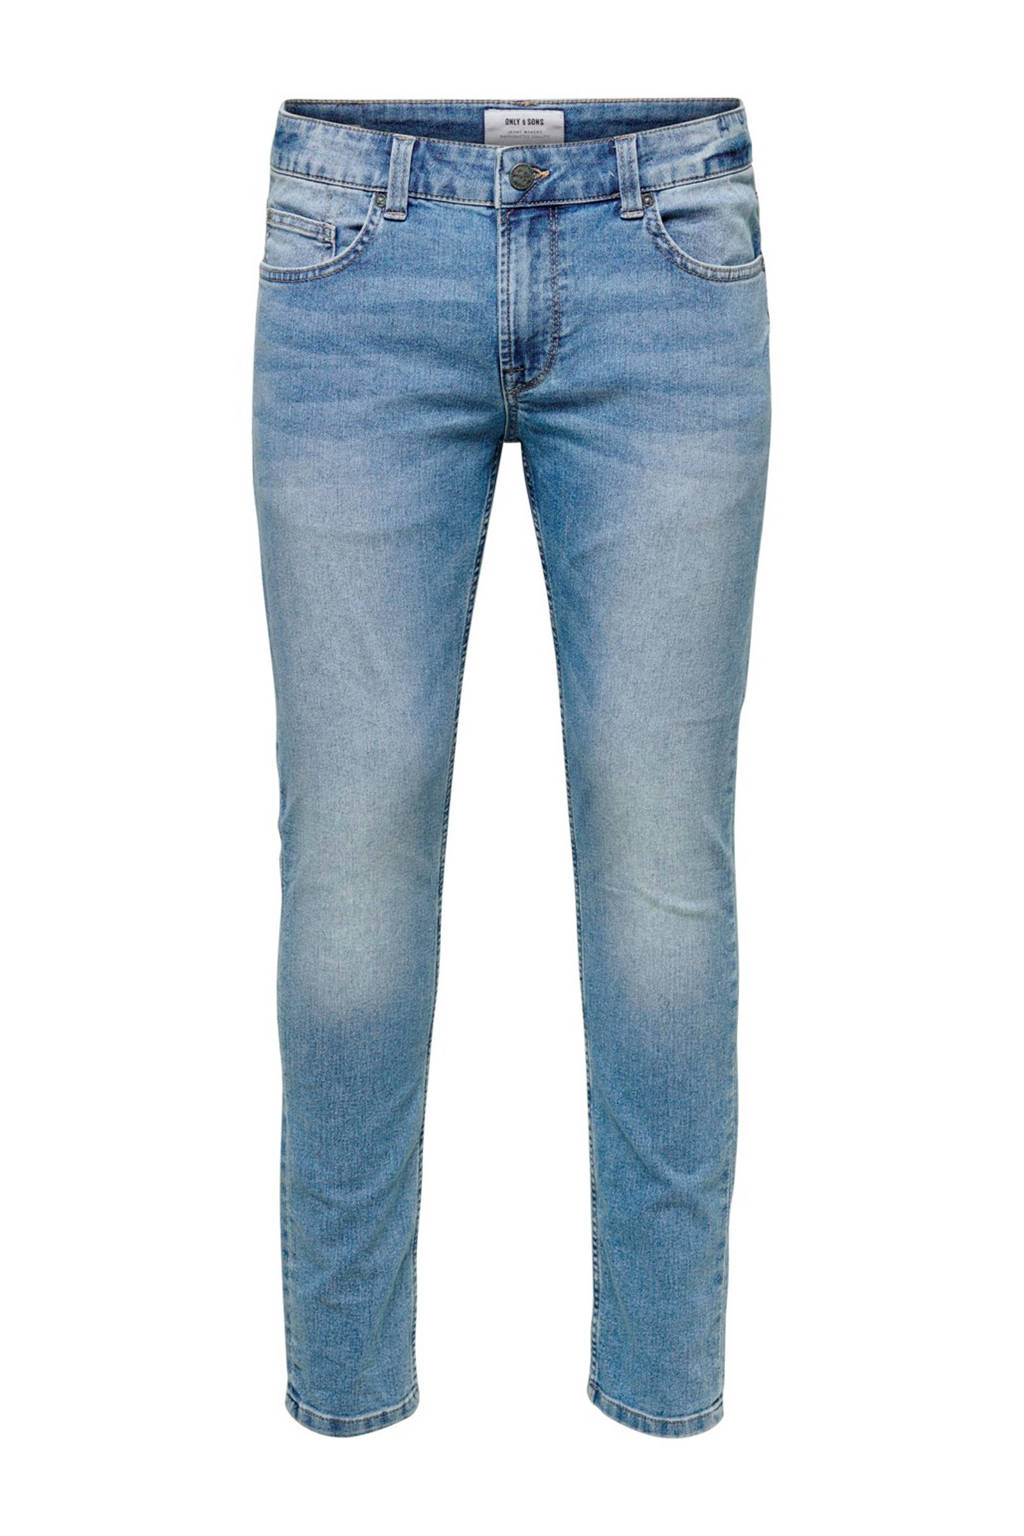 ONLY & SONS skinny jeans blue denim, Blue denim